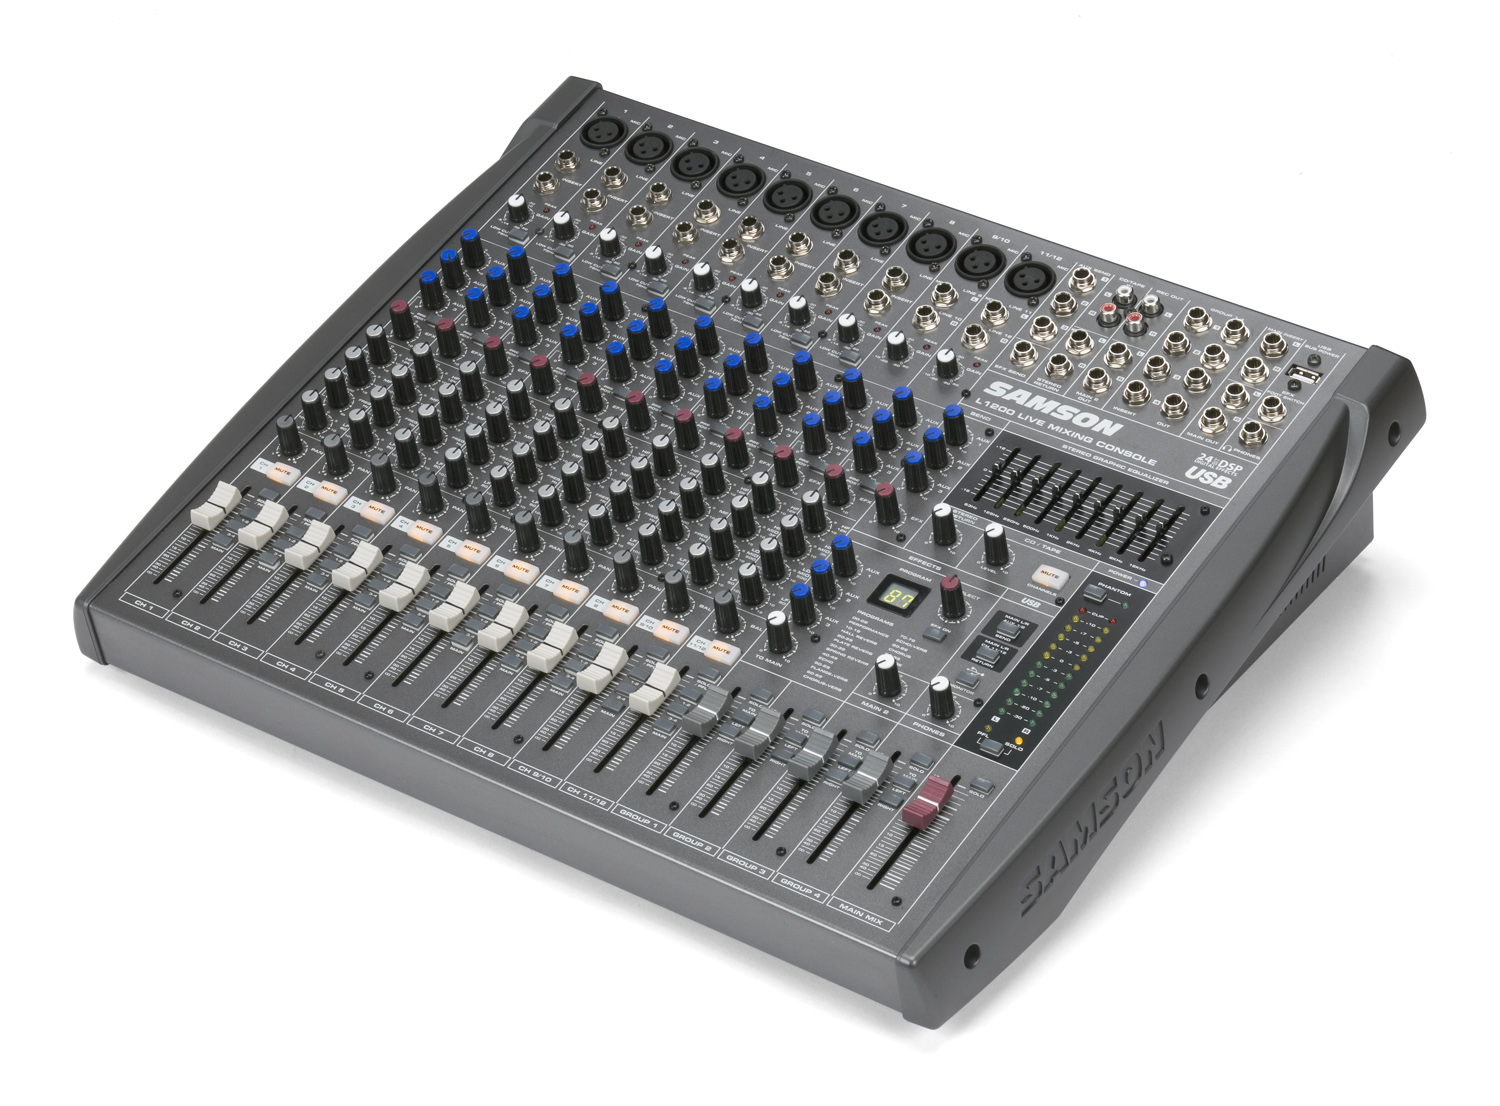 SAMSON L1200 MIXER